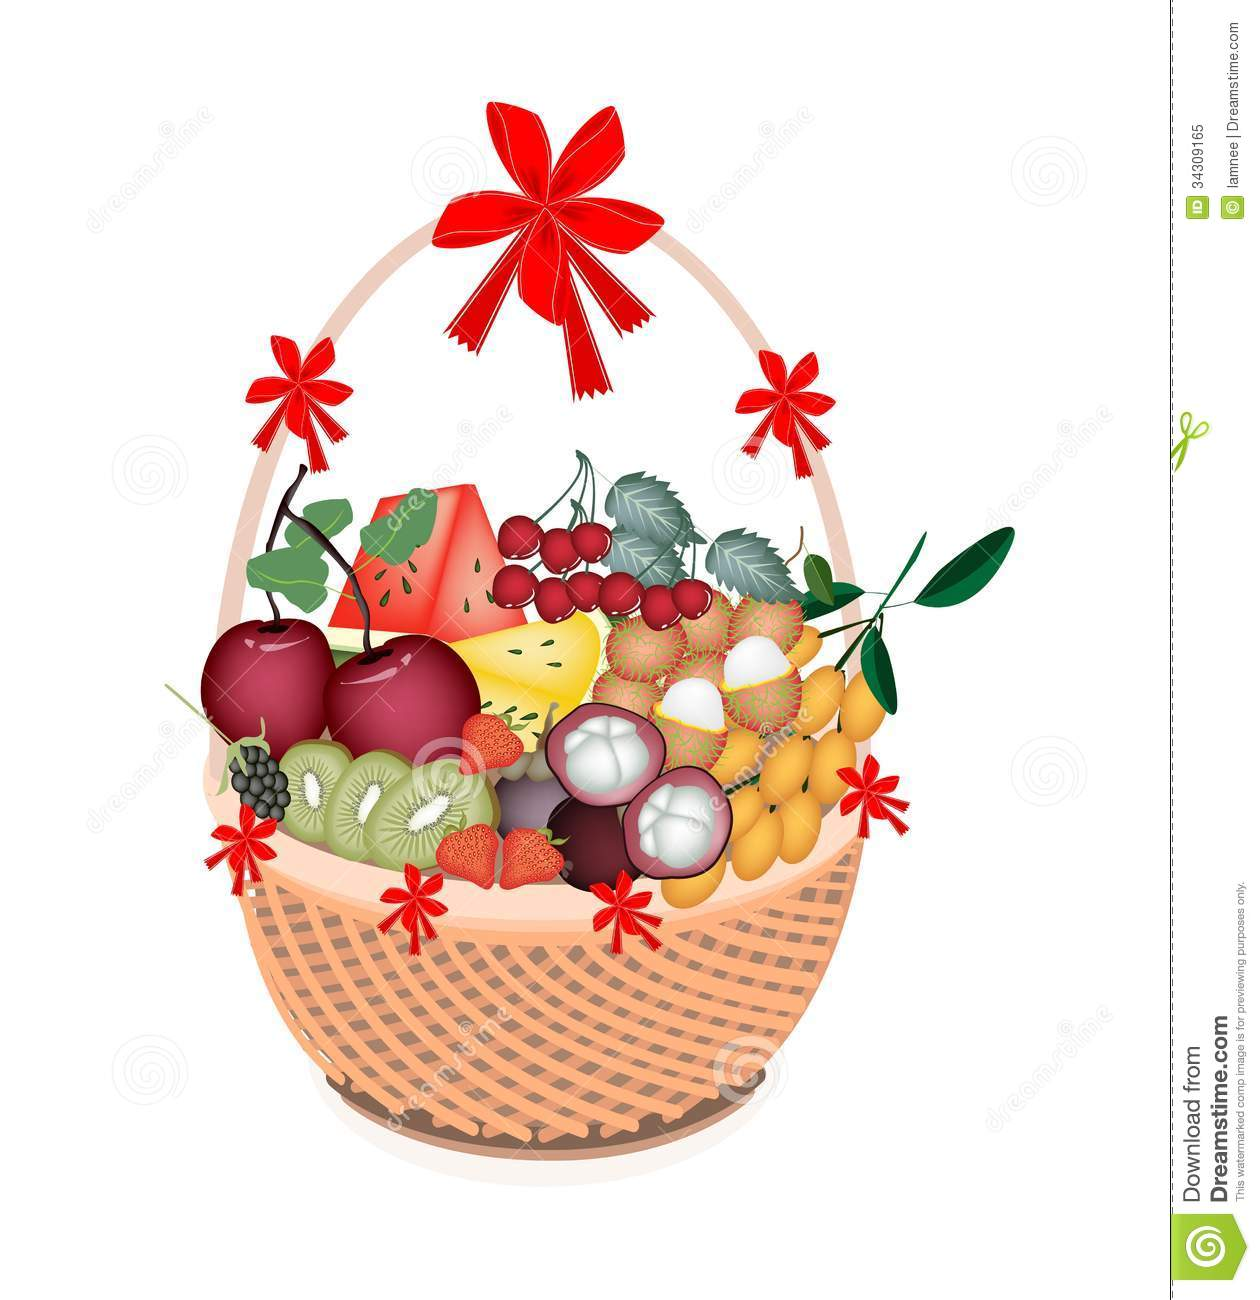 Gift basket cartoon clipart suggest